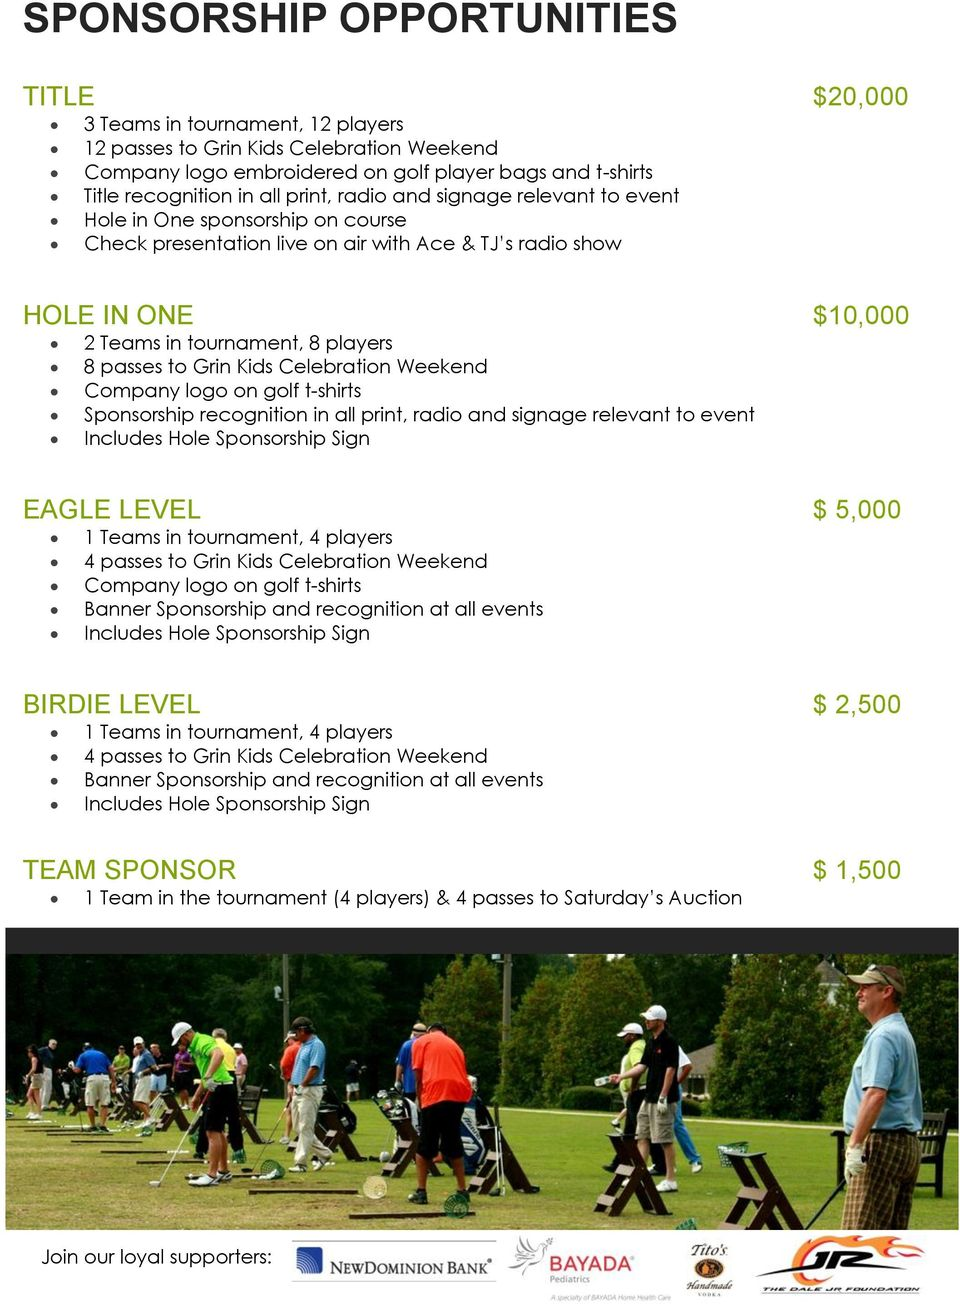 Grin Kids Celebration Weekend Company logo on golf t-shirts Sponsorship recognition in all print, radio and signage relevant to event Includes Hole Sponsorship Sign EAGLE LEVEL $ 5,000 1 Teams in